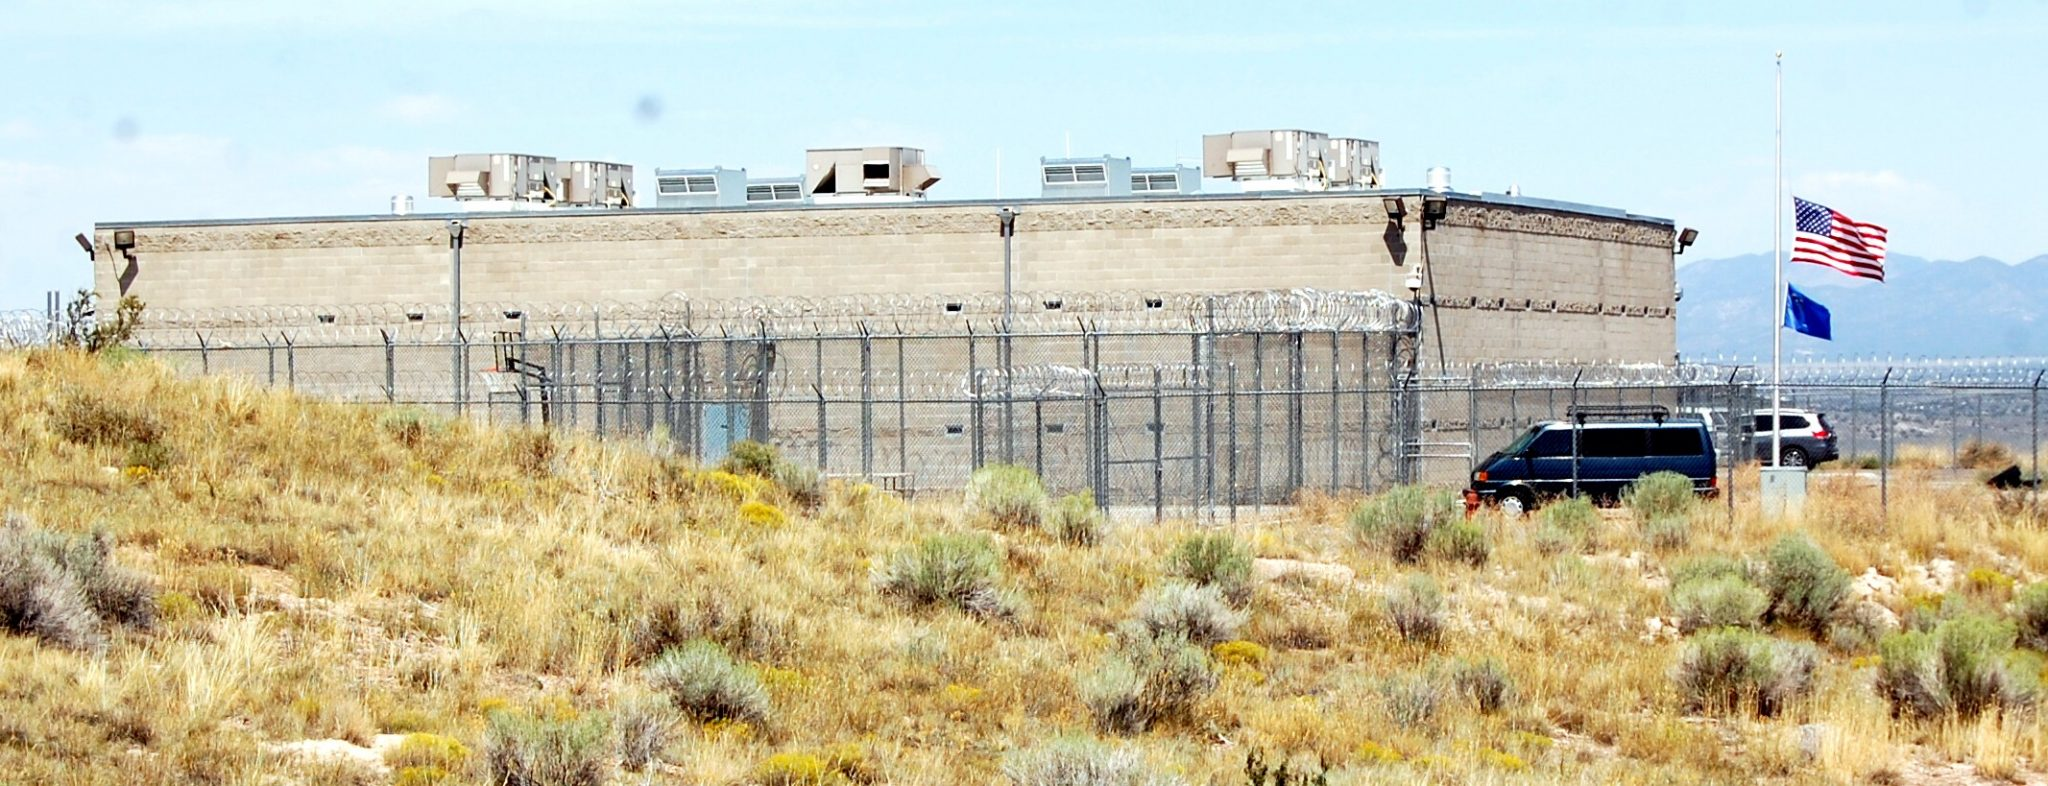 More women inmates creating expansion need